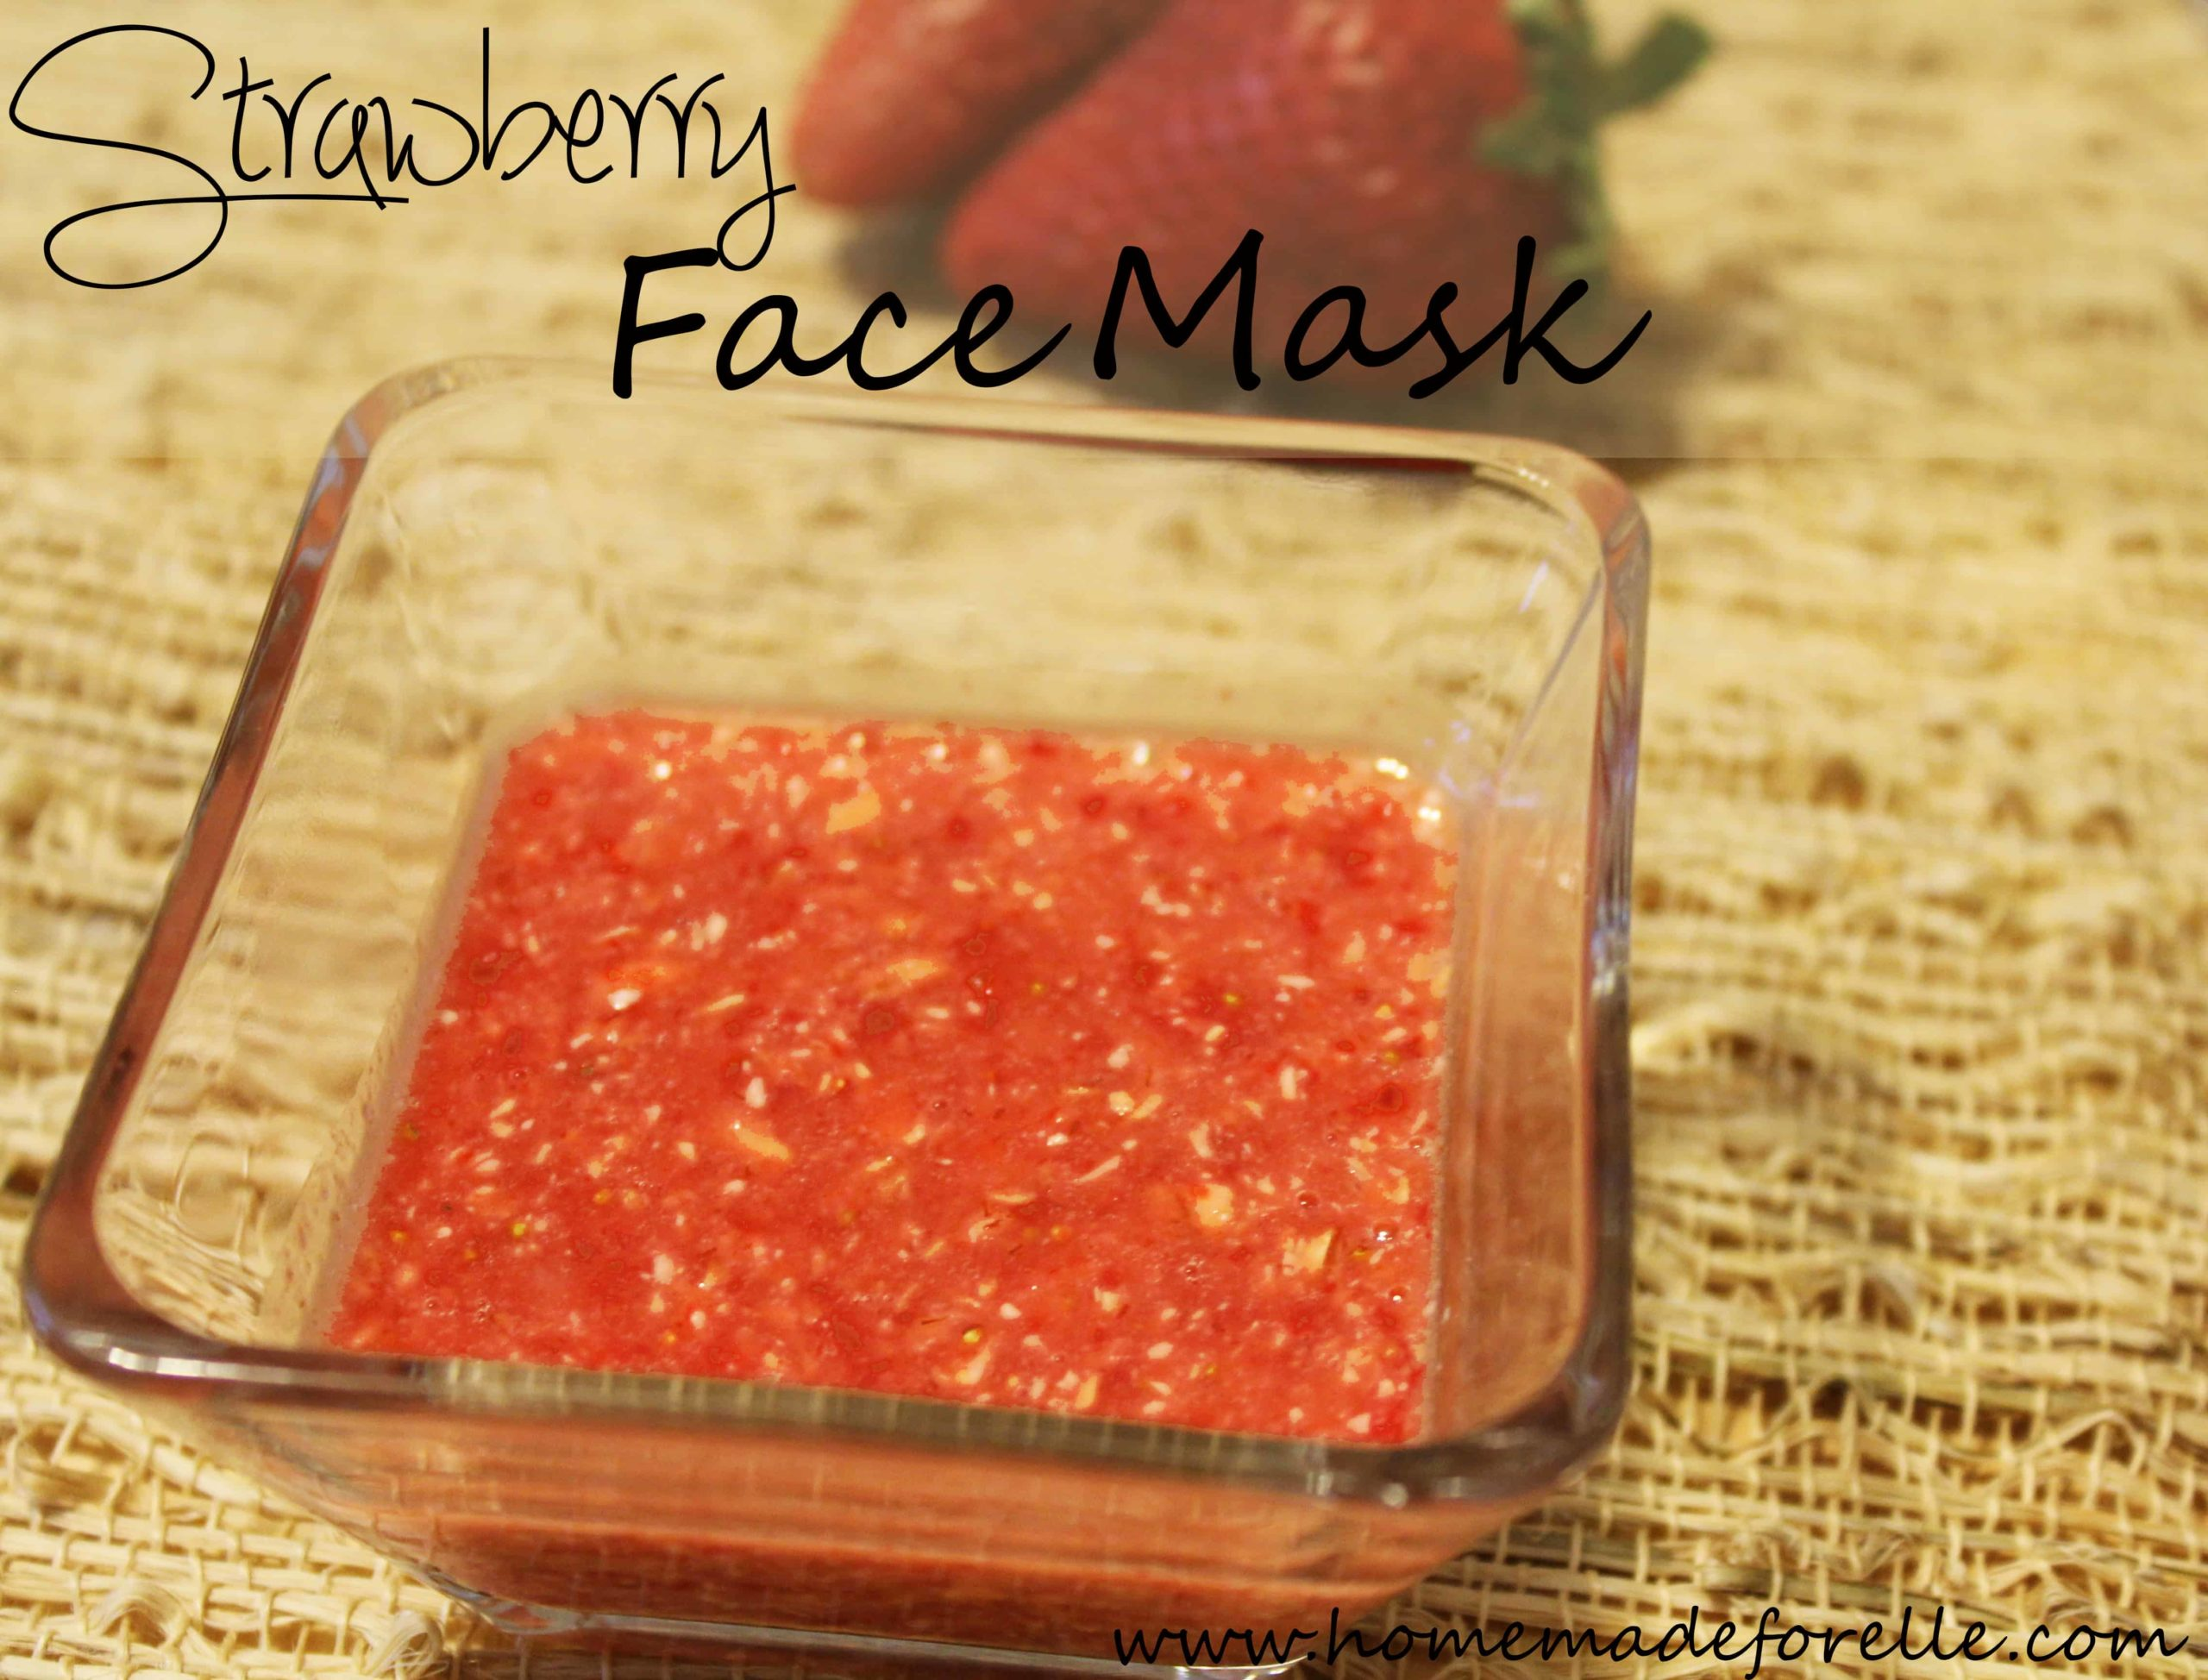 Moisturizing & Exfoliating Strawberry Face Mask